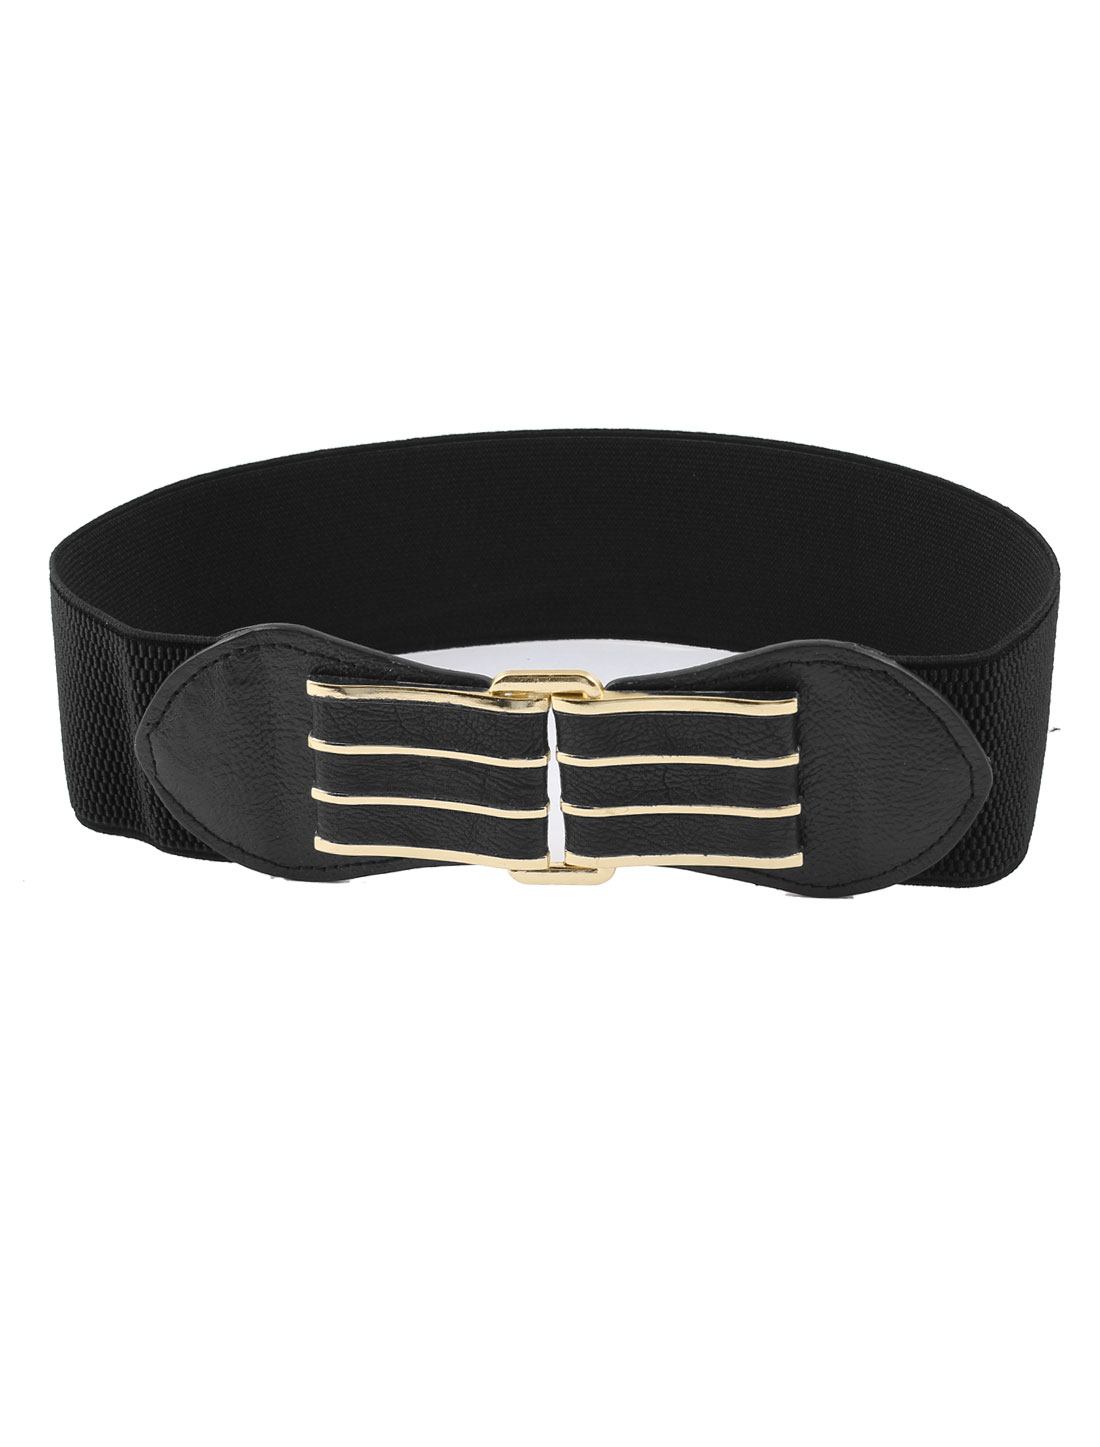 Dress Match Faux Leather Metal Buckle Stretch Waist Band Belt Black for Women